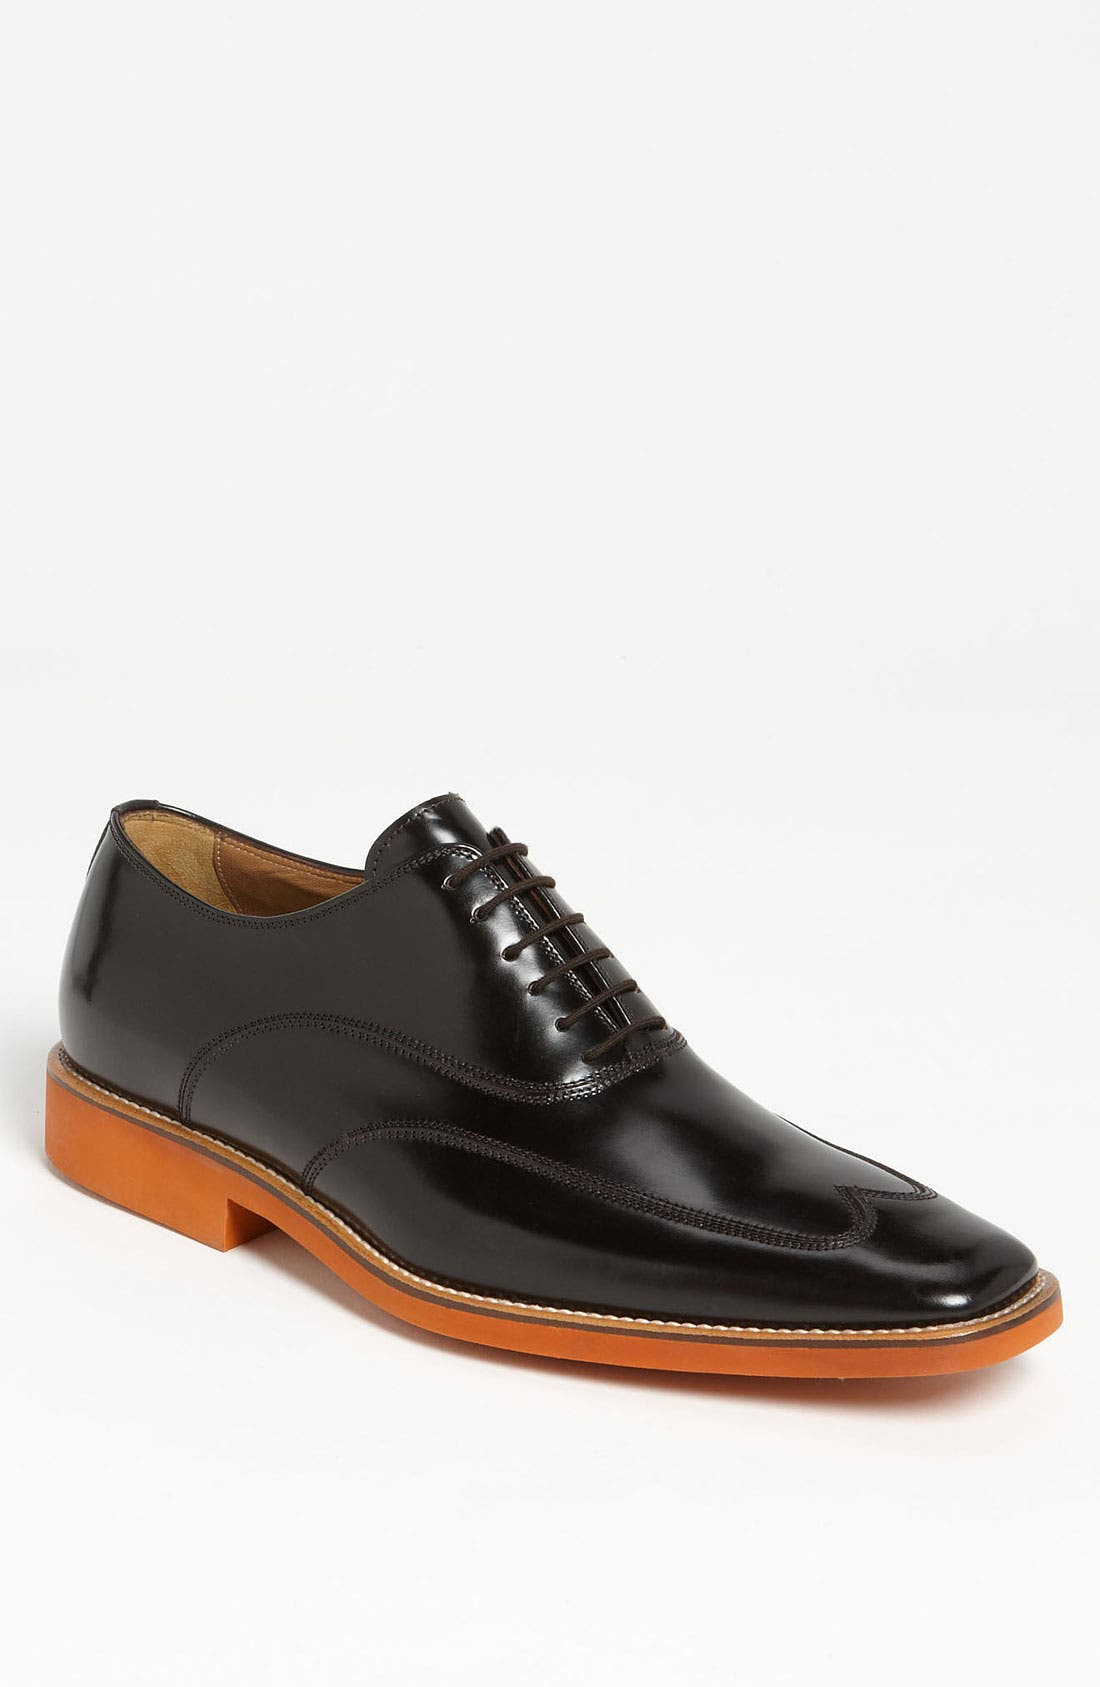 Main Image - Michael Toschi 'Luciano' Patent Leather Wingtip